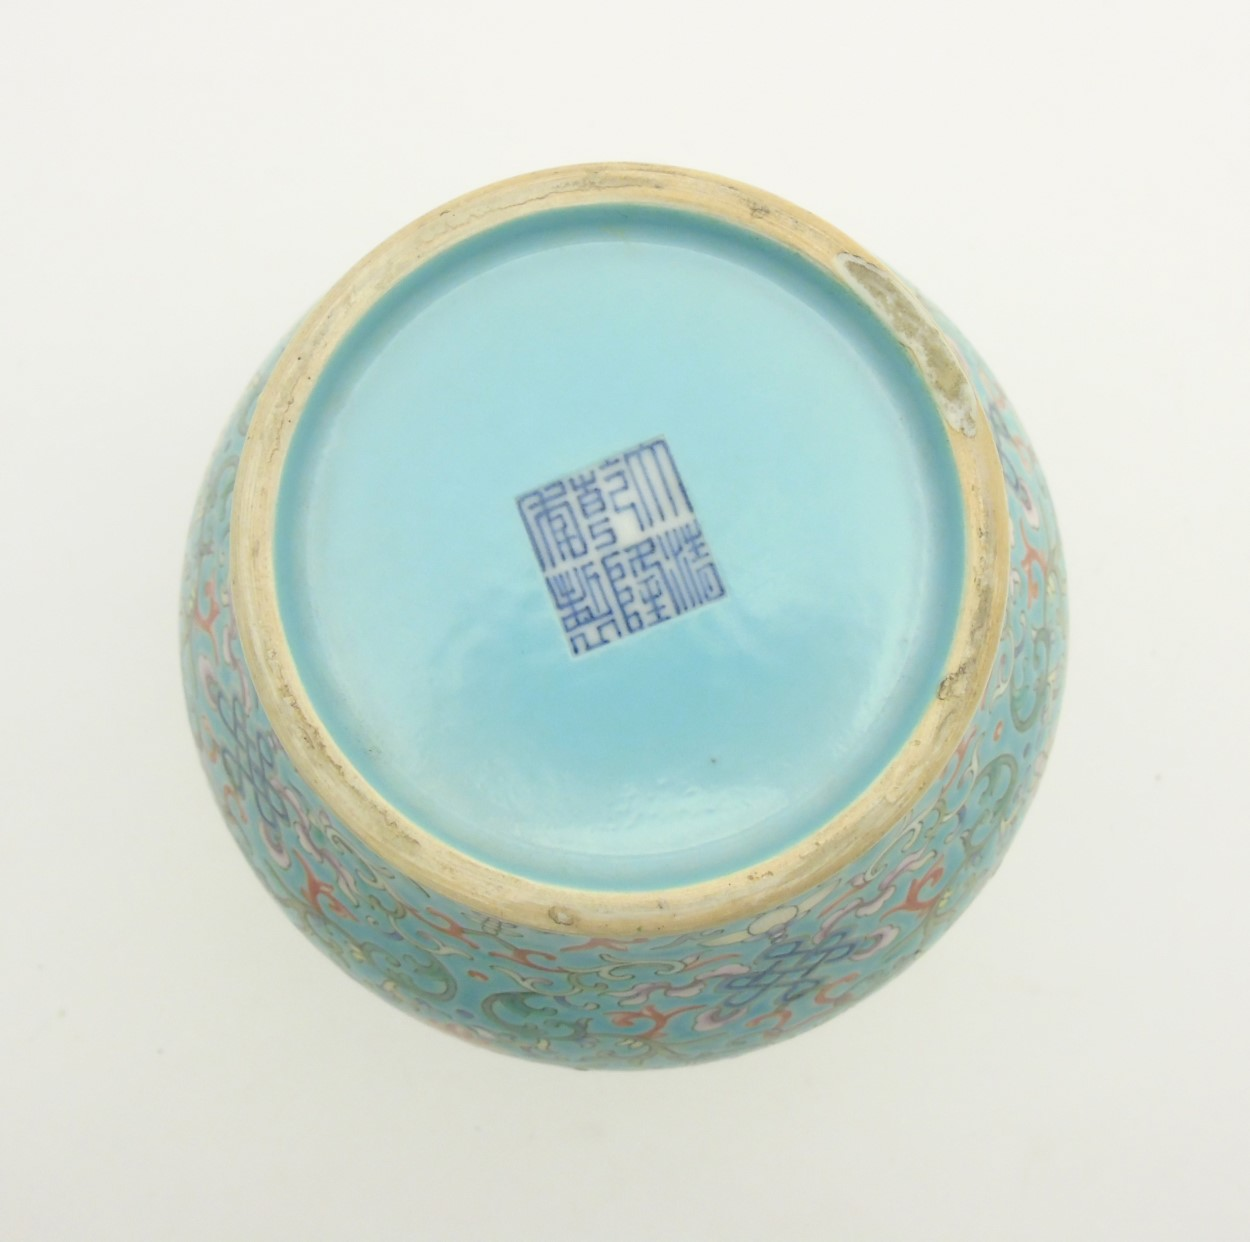 Lot 41 - A Chinese Famille Rose turquoise-ground cloisonné-imitation vase, with round bulbous body to centre,